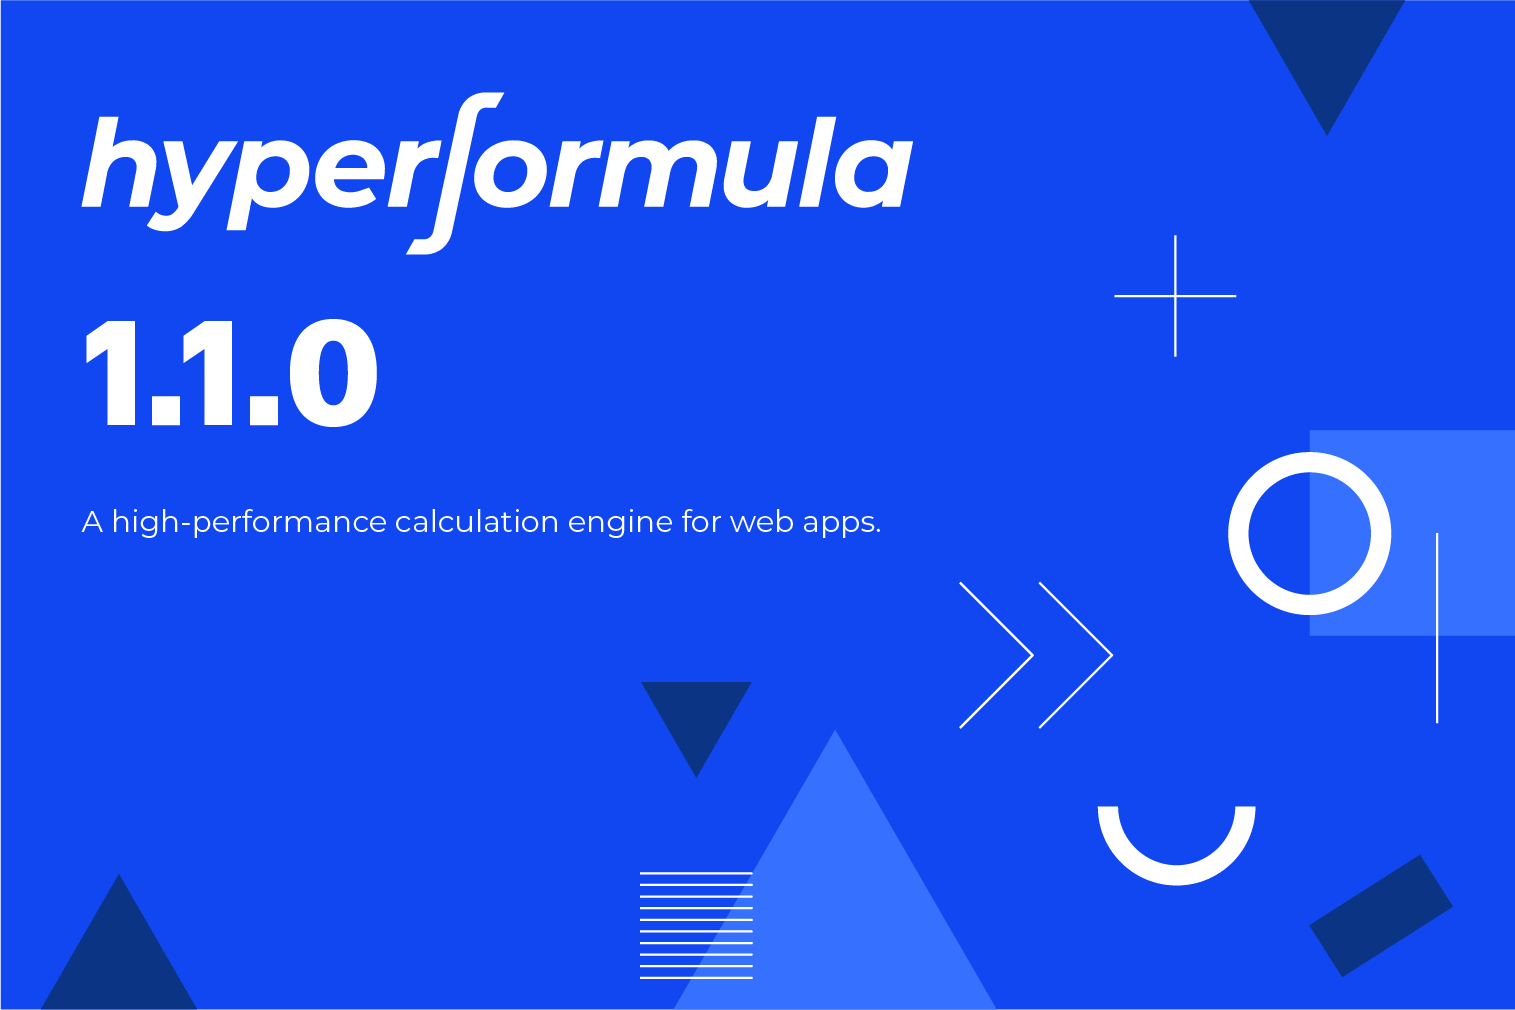 What's new in HyperFormula 1.1.0